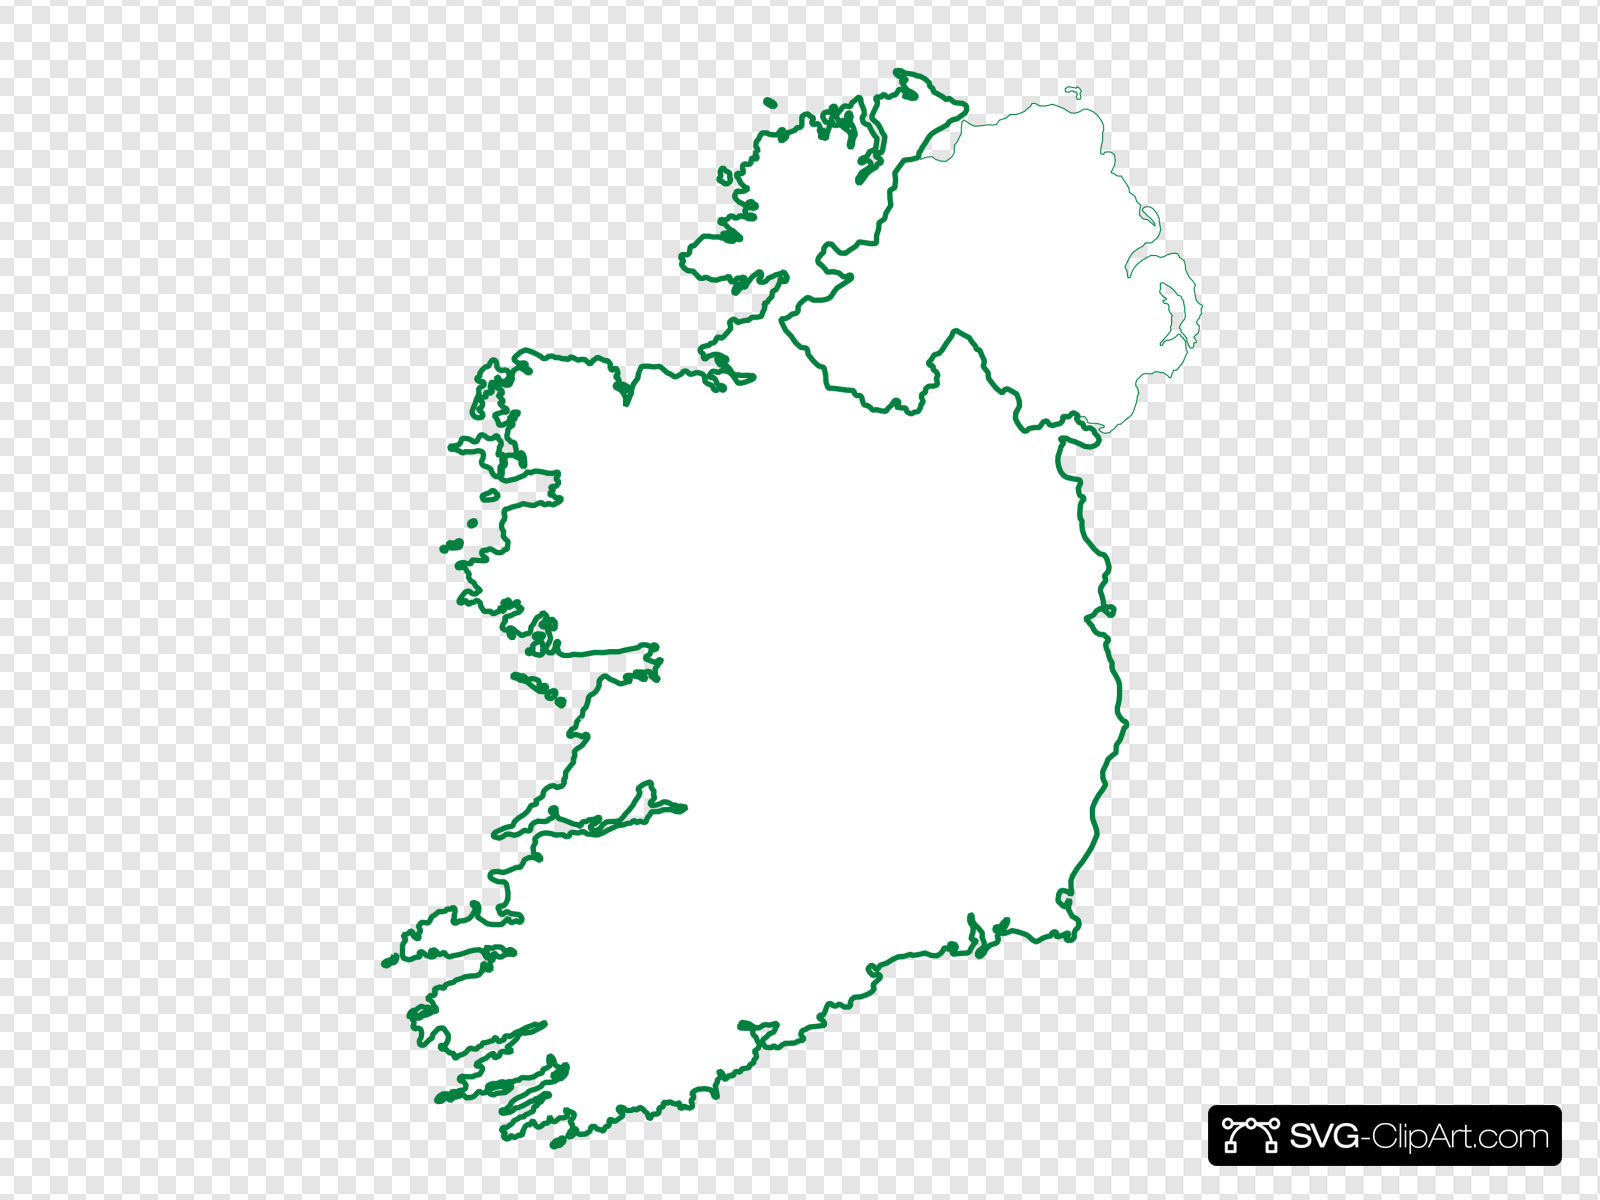 Tralee Ireland Map Clip art, Icon and SVG.